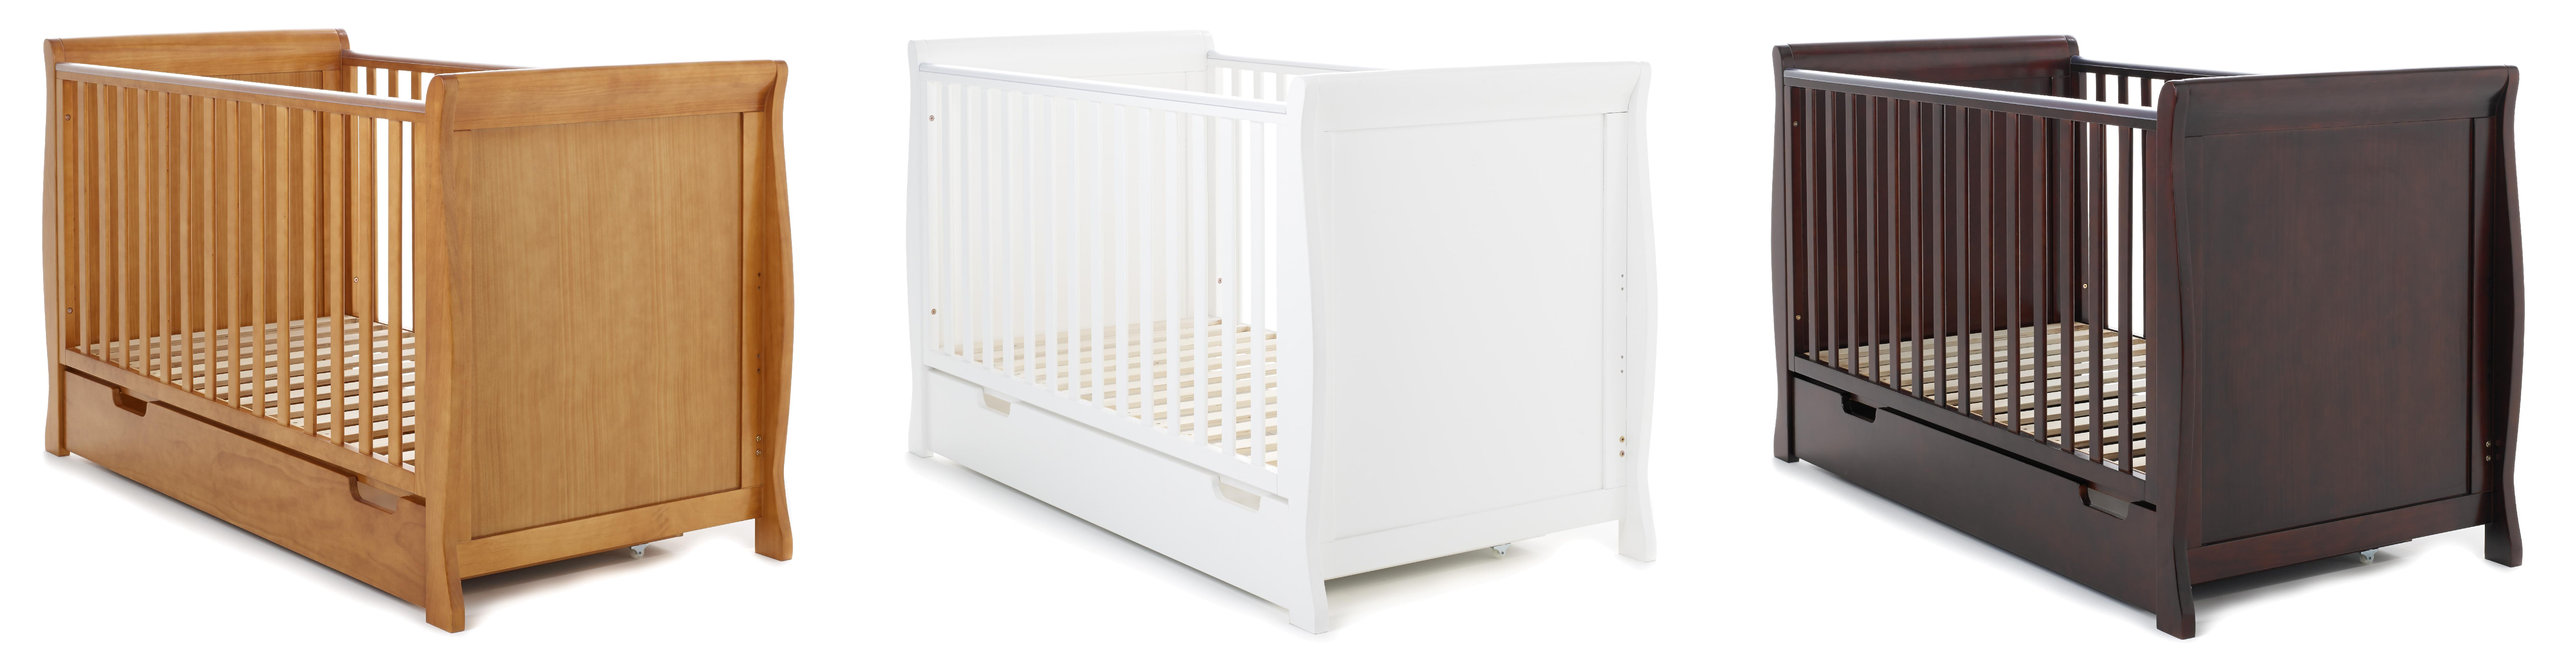 Obaby Sleigh Cot Bed And Under Drawer White Amazonco